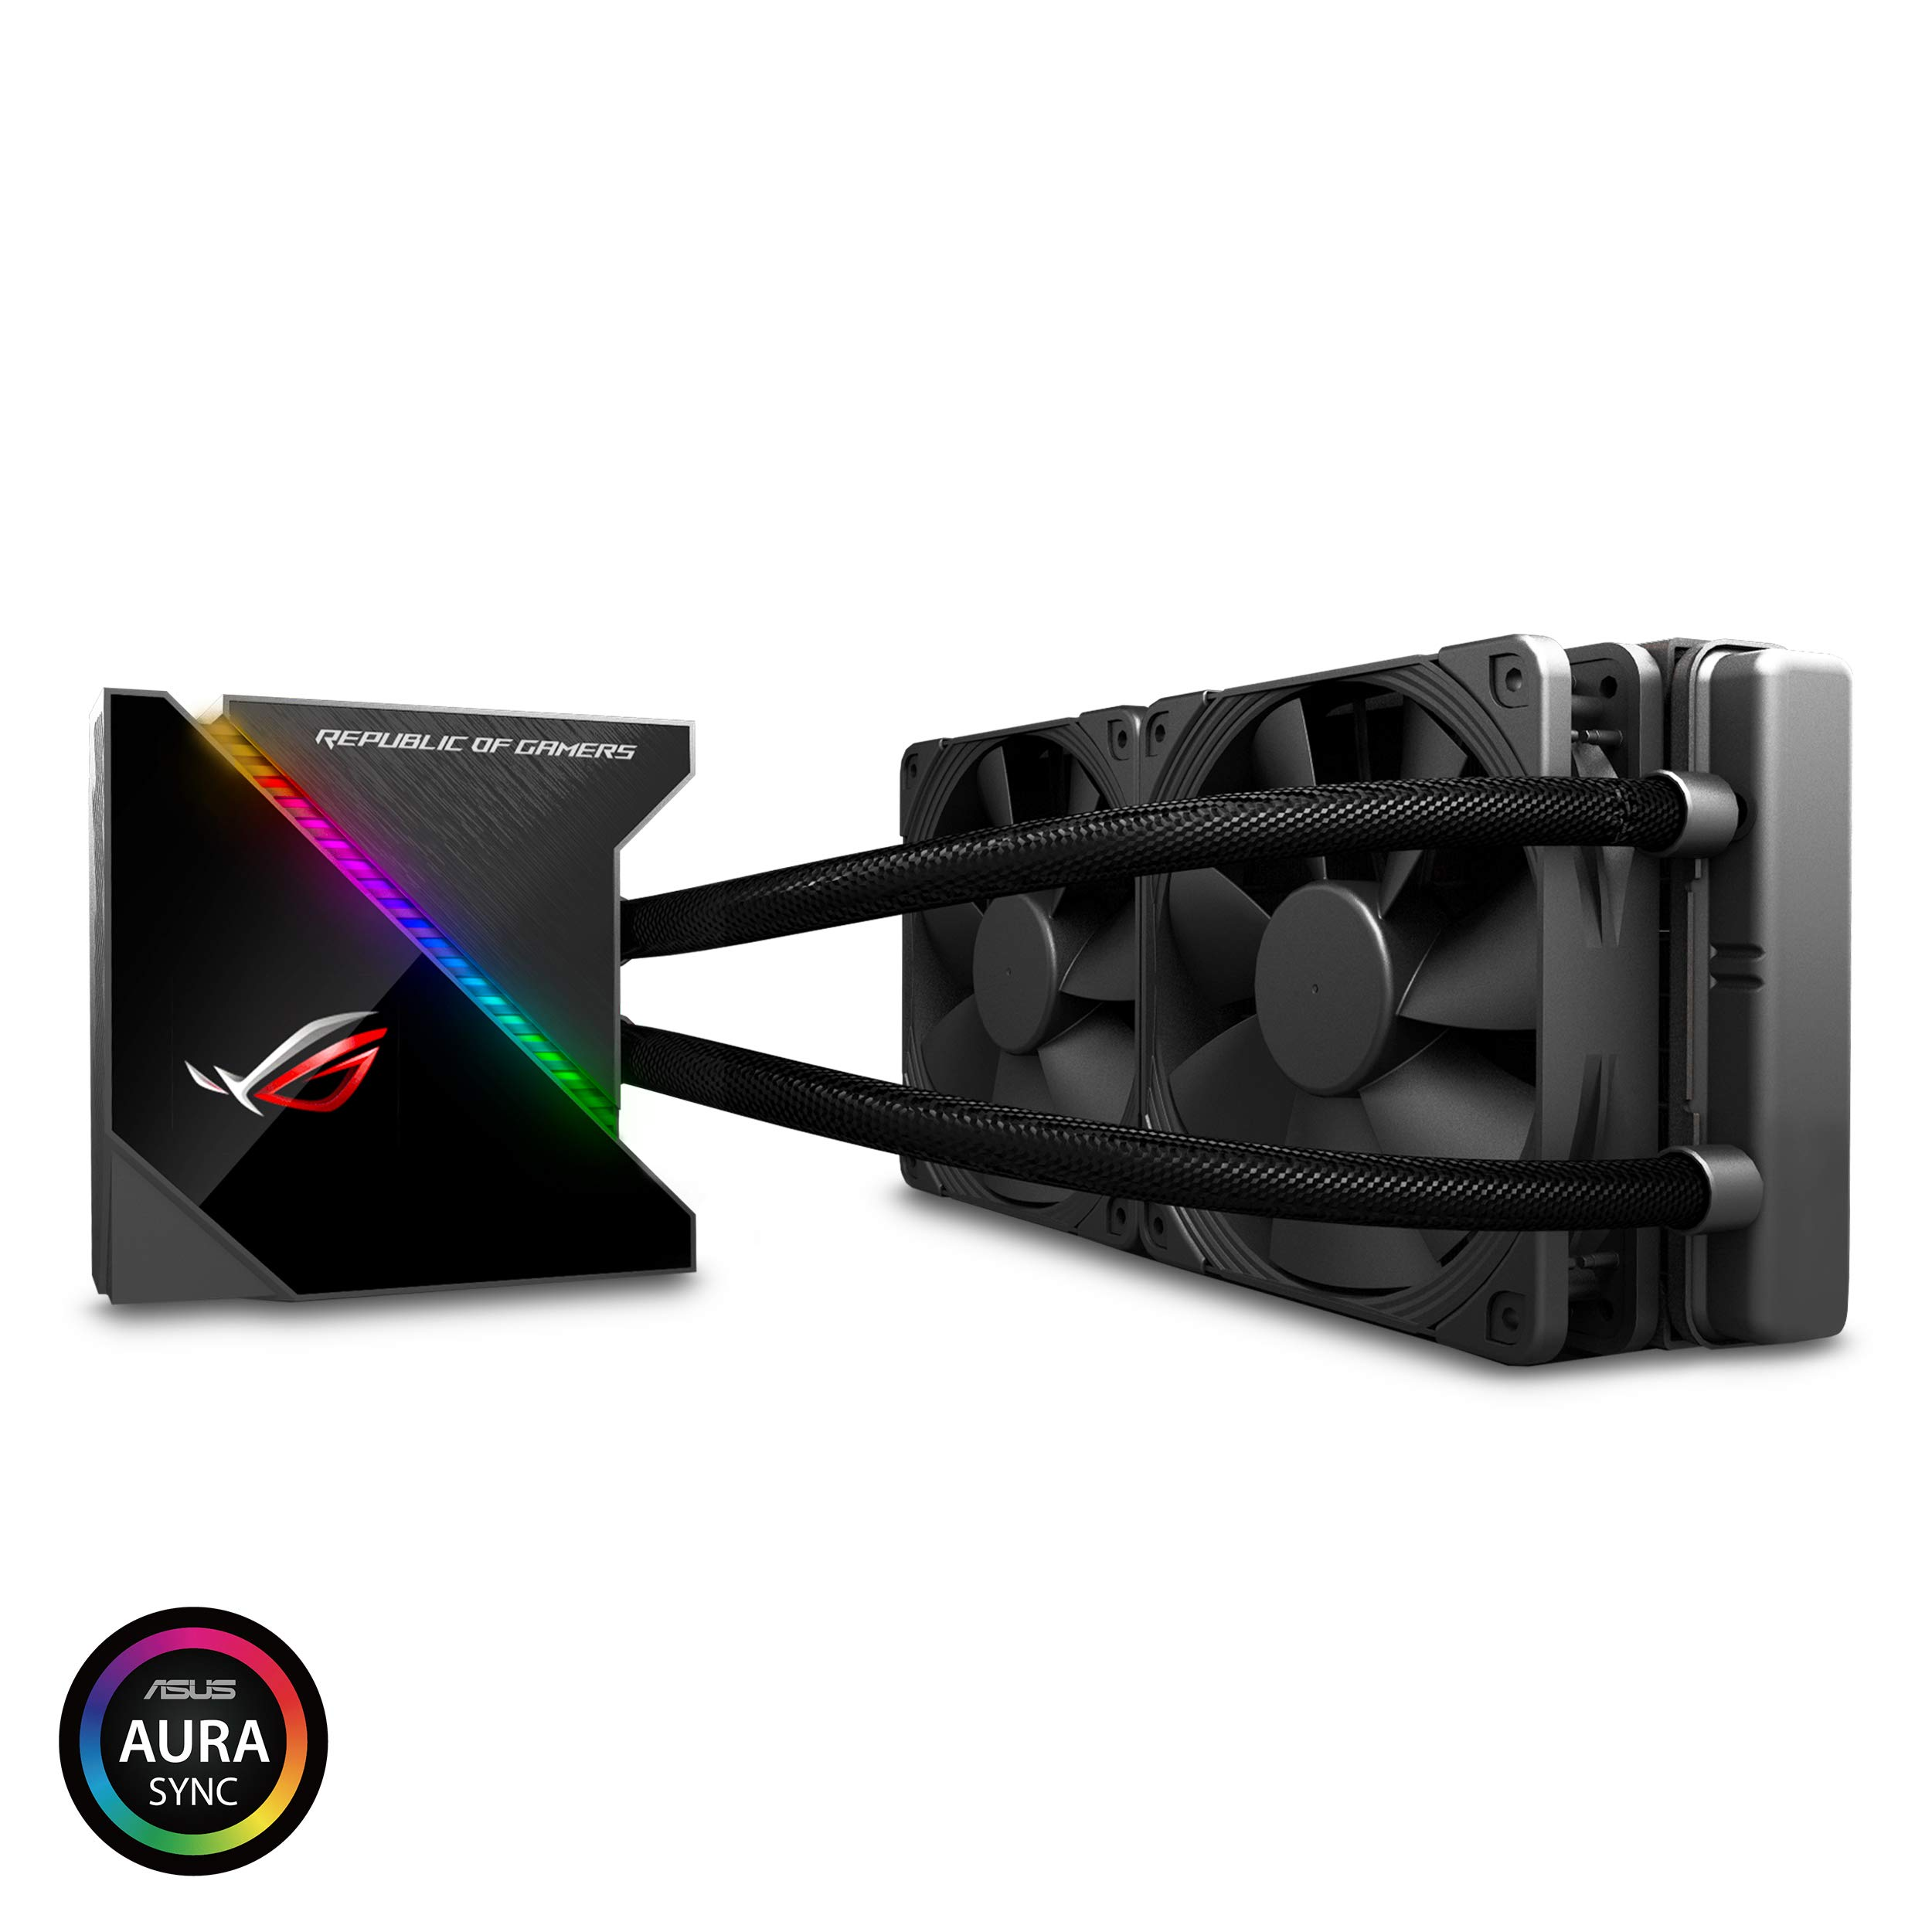 ASUS ROG Ryujin 240 RGB AIO Liquid CPU Cooler 240mm Radiator (Dual 120mm 4-pin Noctua iPPC PWM Fans) with LIVEDASH OLED Panel and FanXpert Controls by Asus (Image #1)